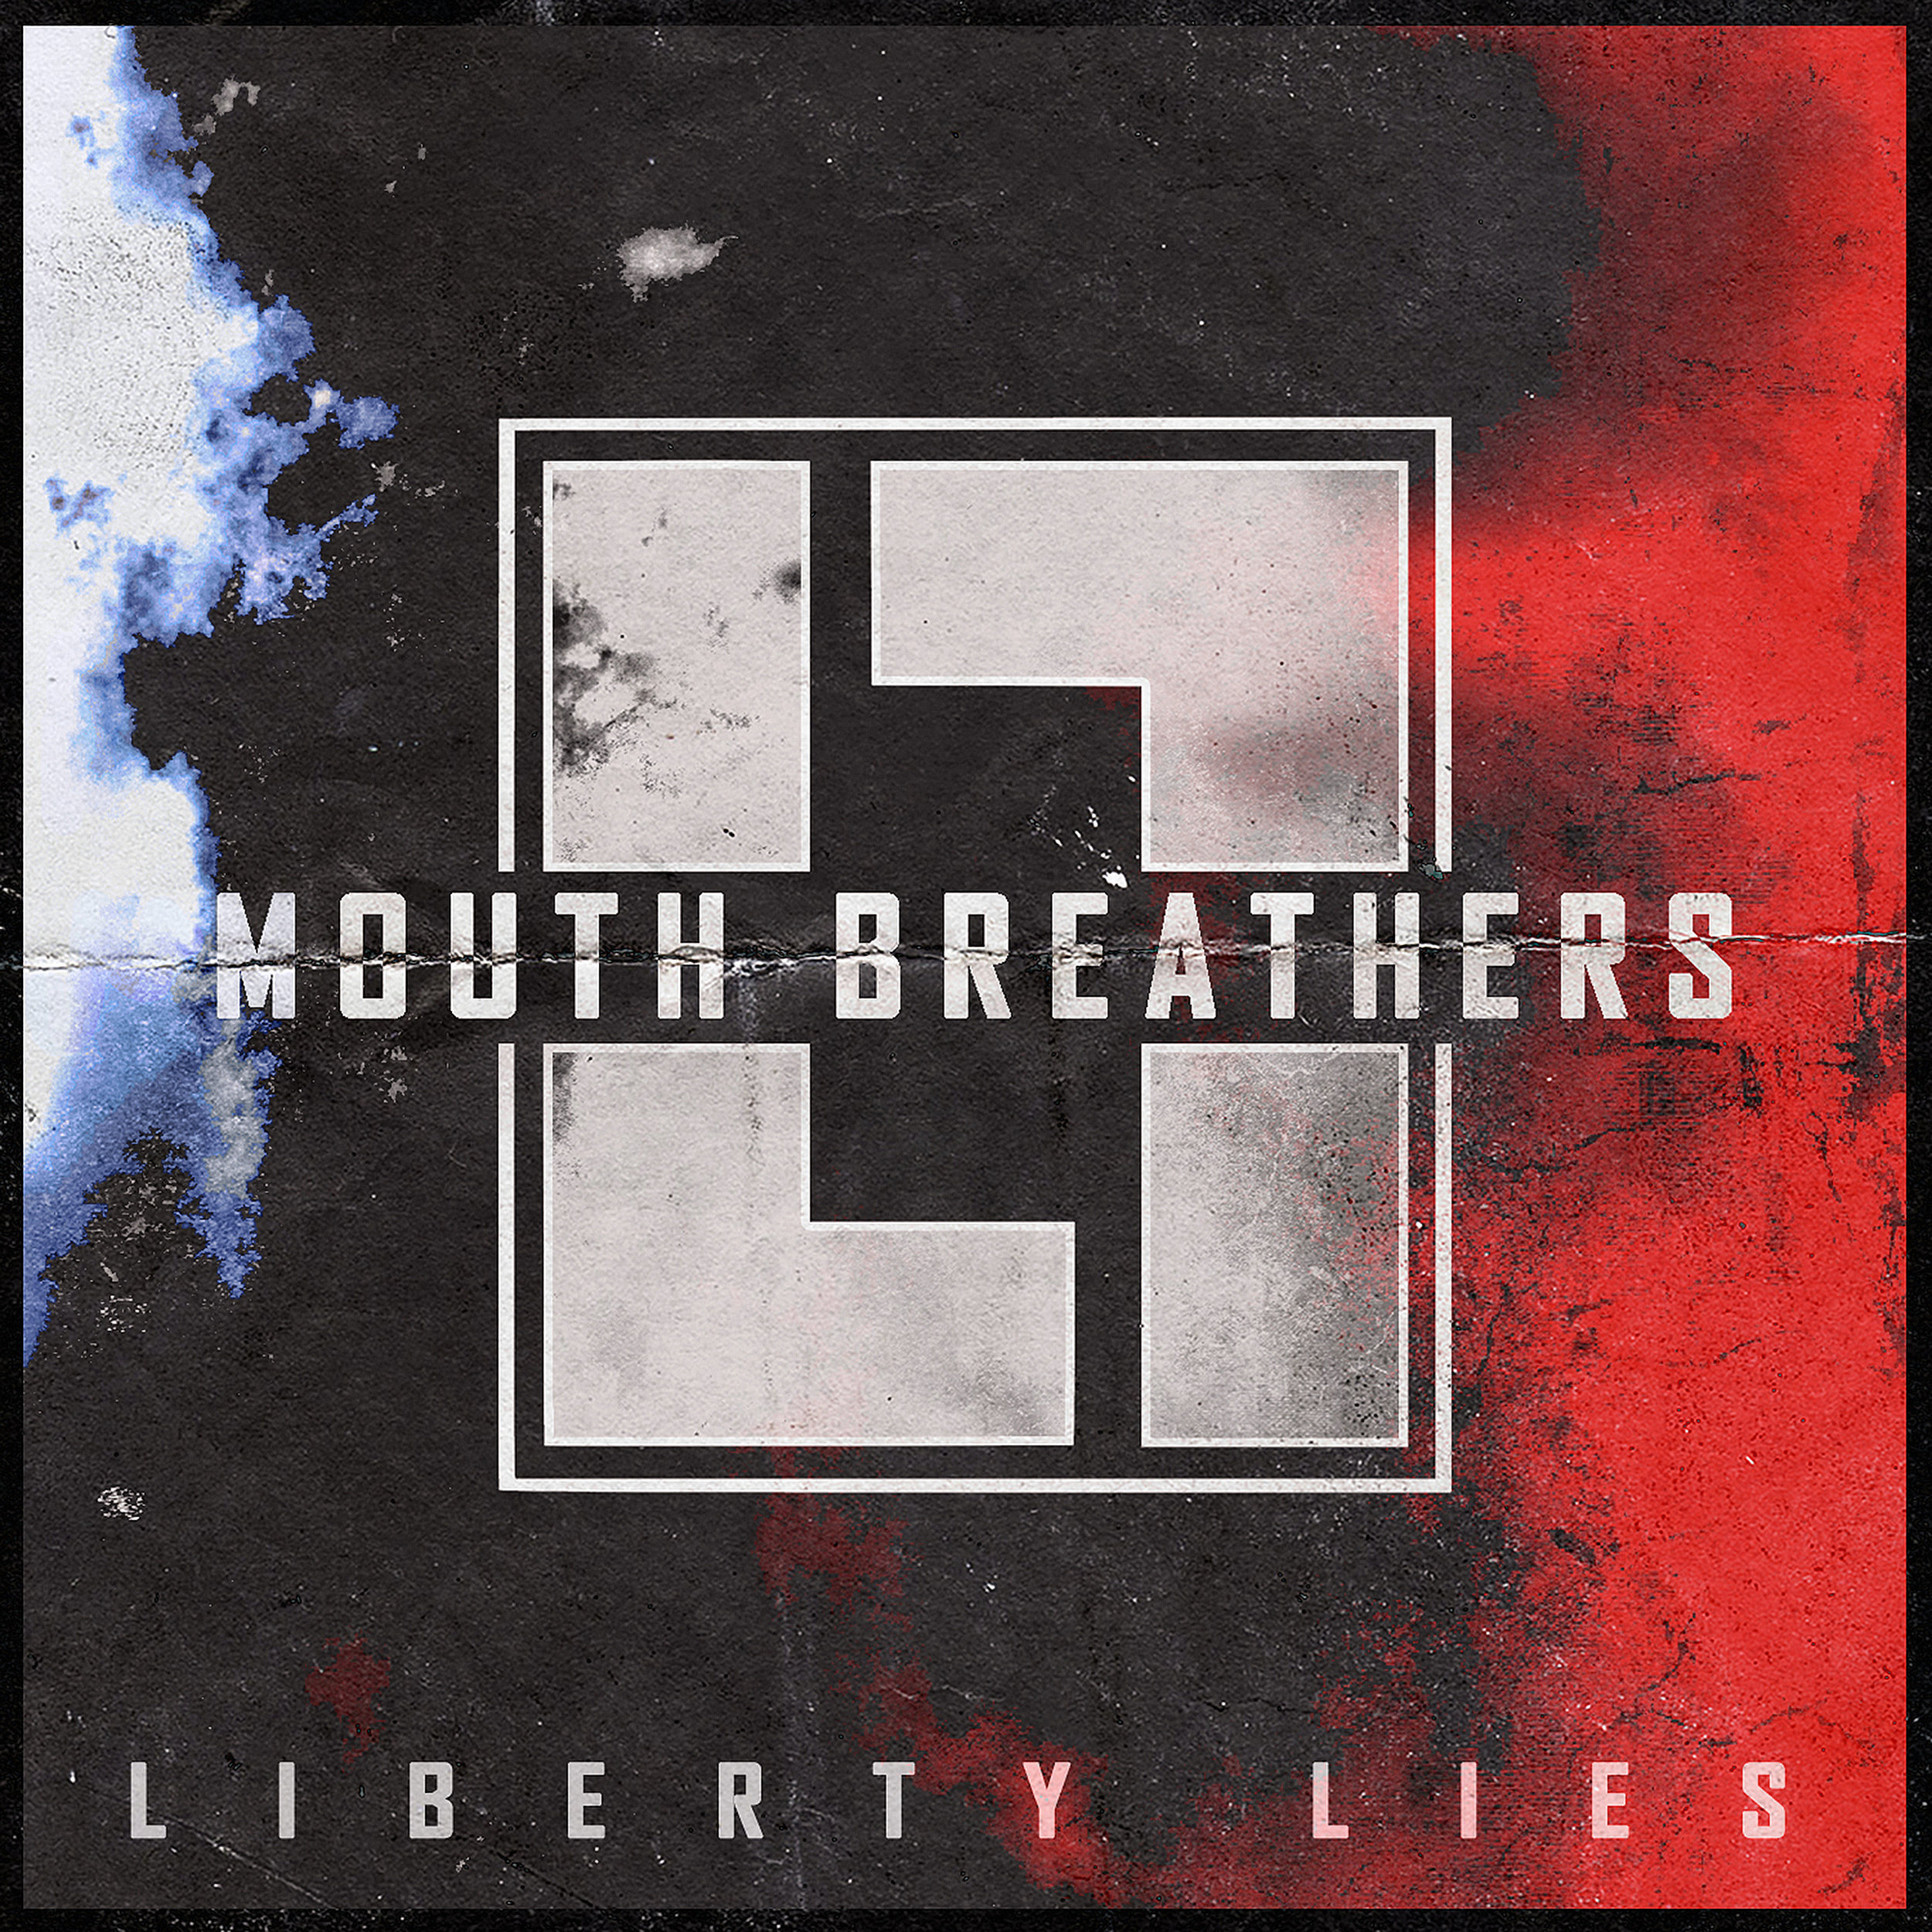 MouthBreathersSingleCover.jpg